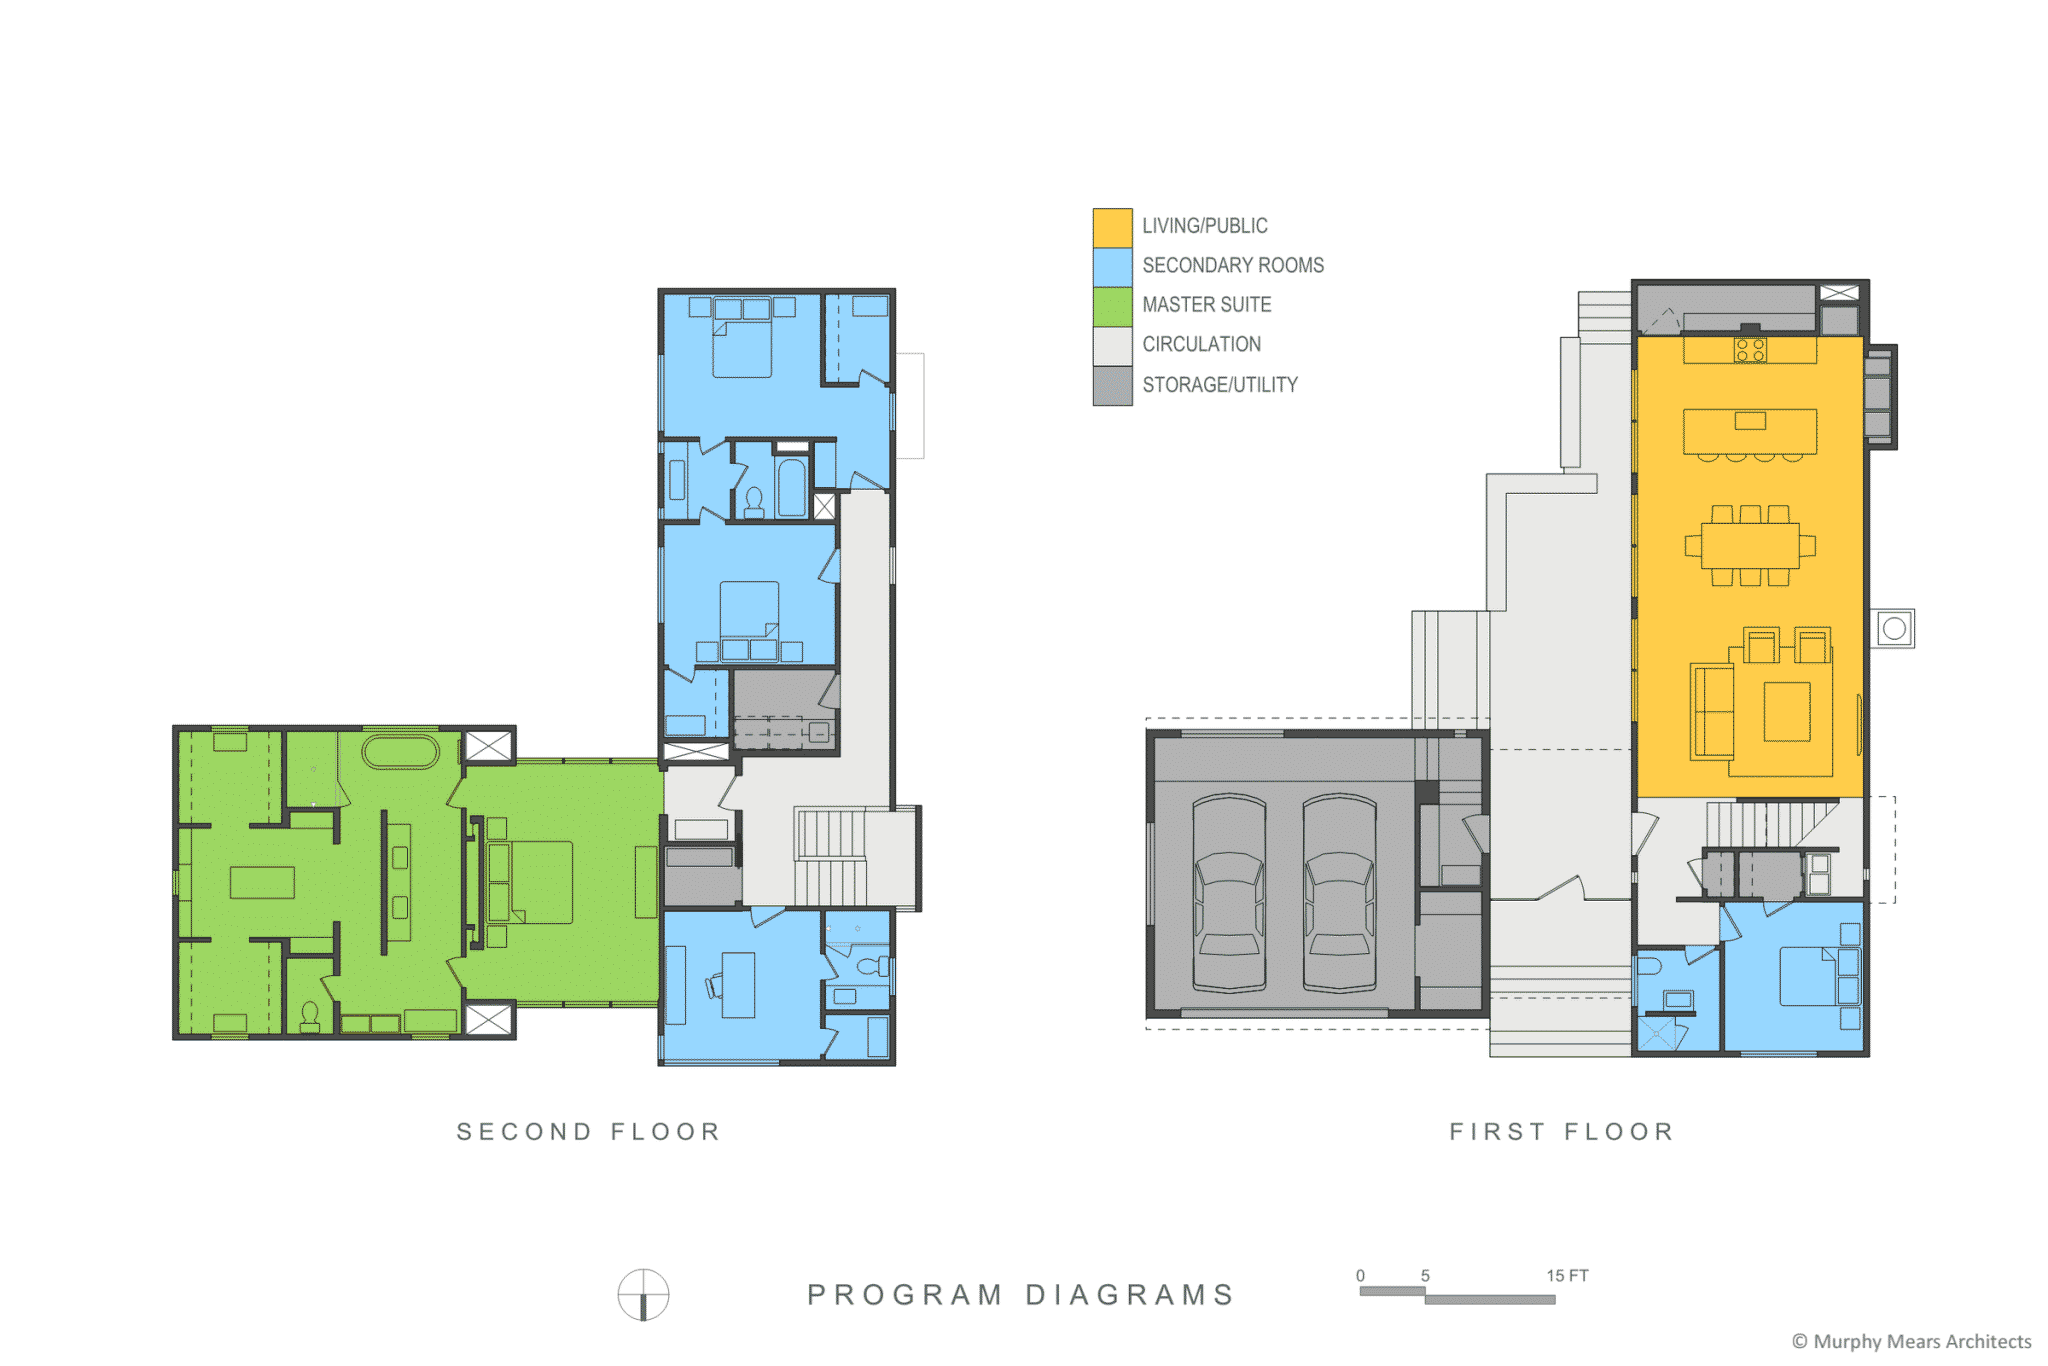 First and second floor plan diagrams.